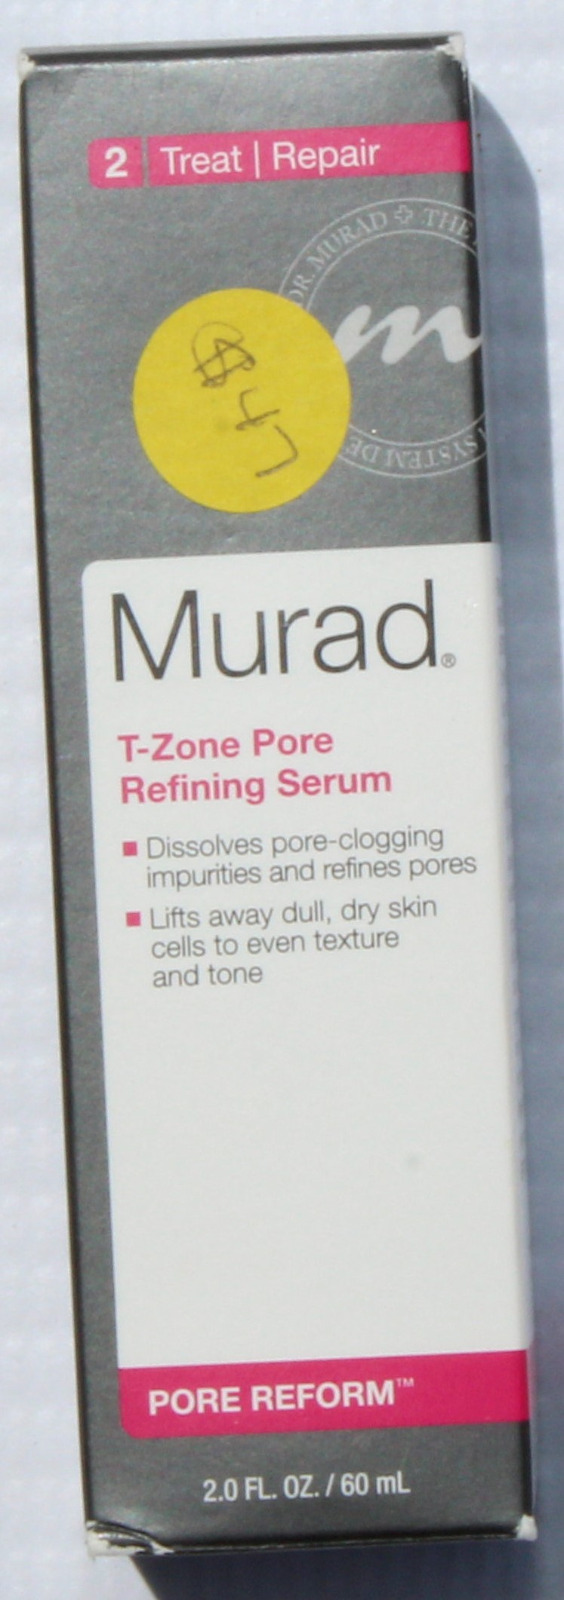 T-Zone Pore Refining Serum